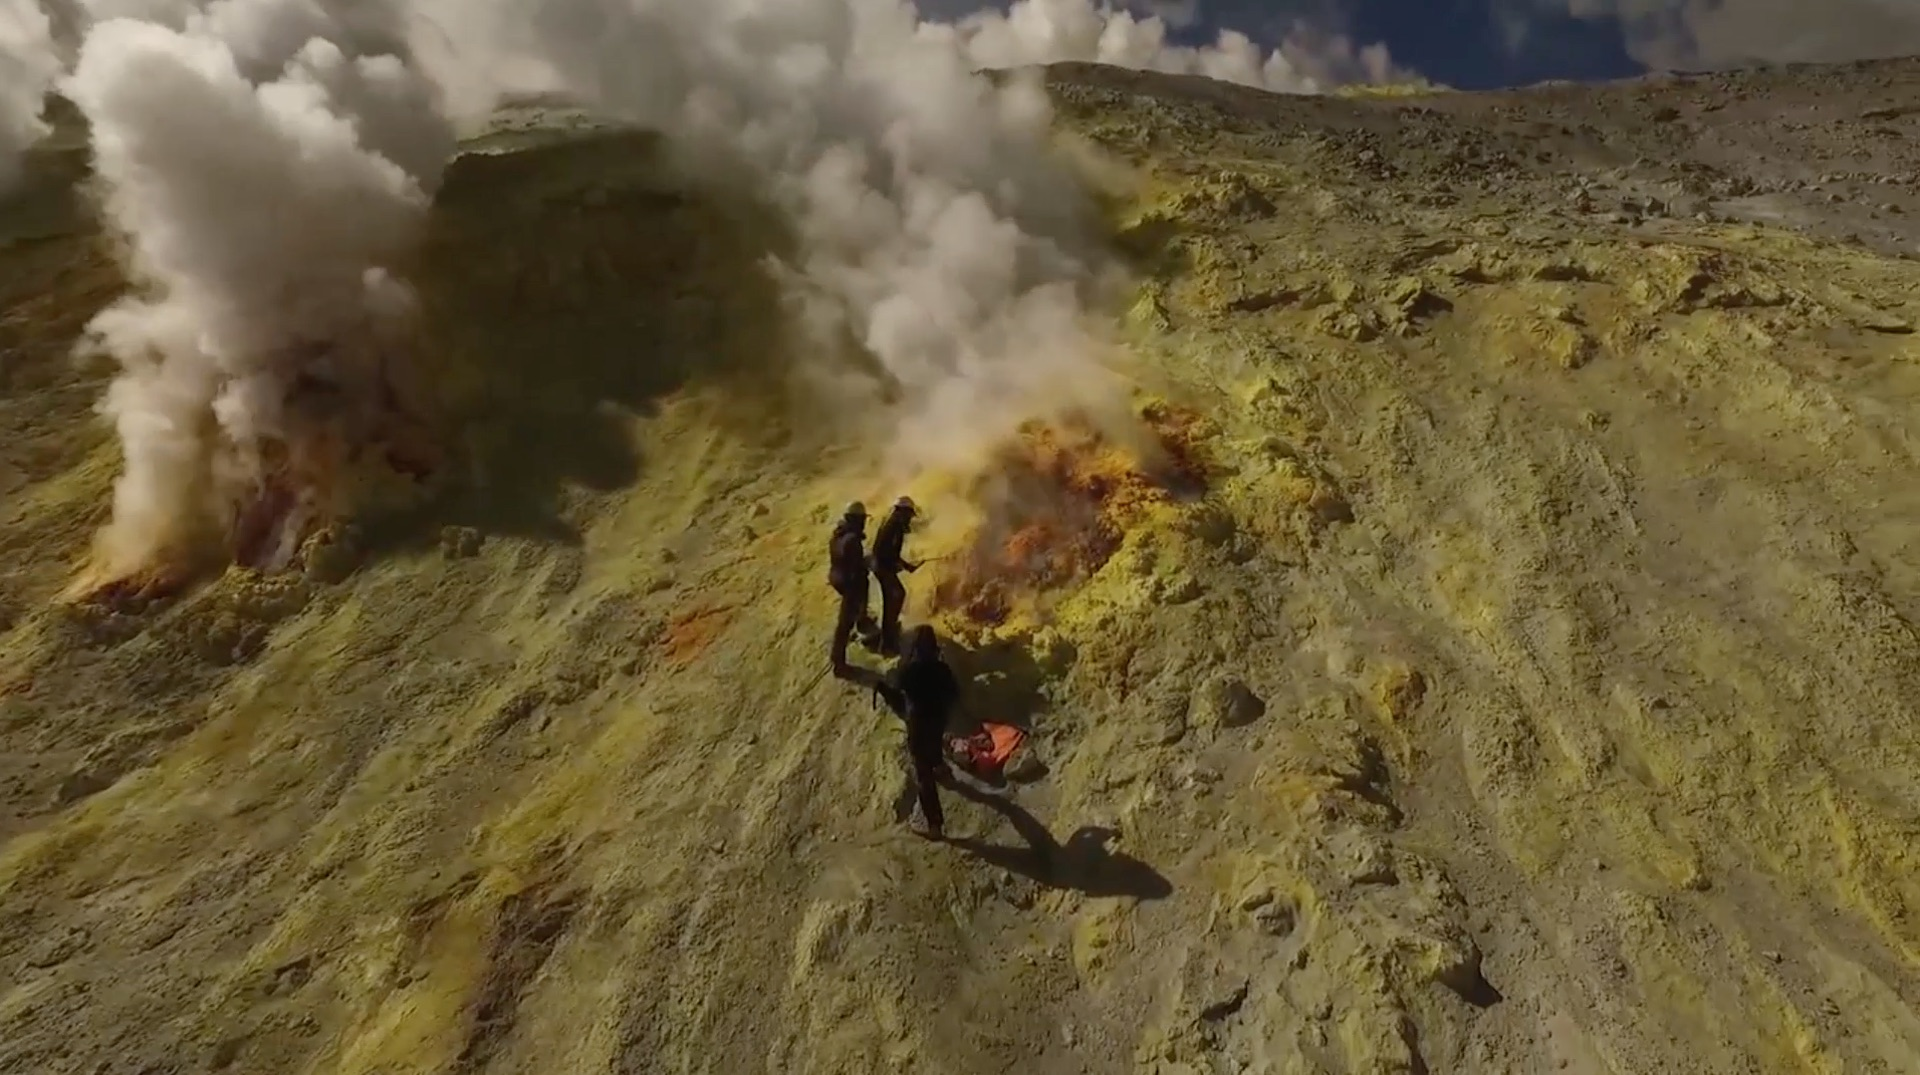 Watch Earth pulse with earthquakes and eruptions in this stunning visualization